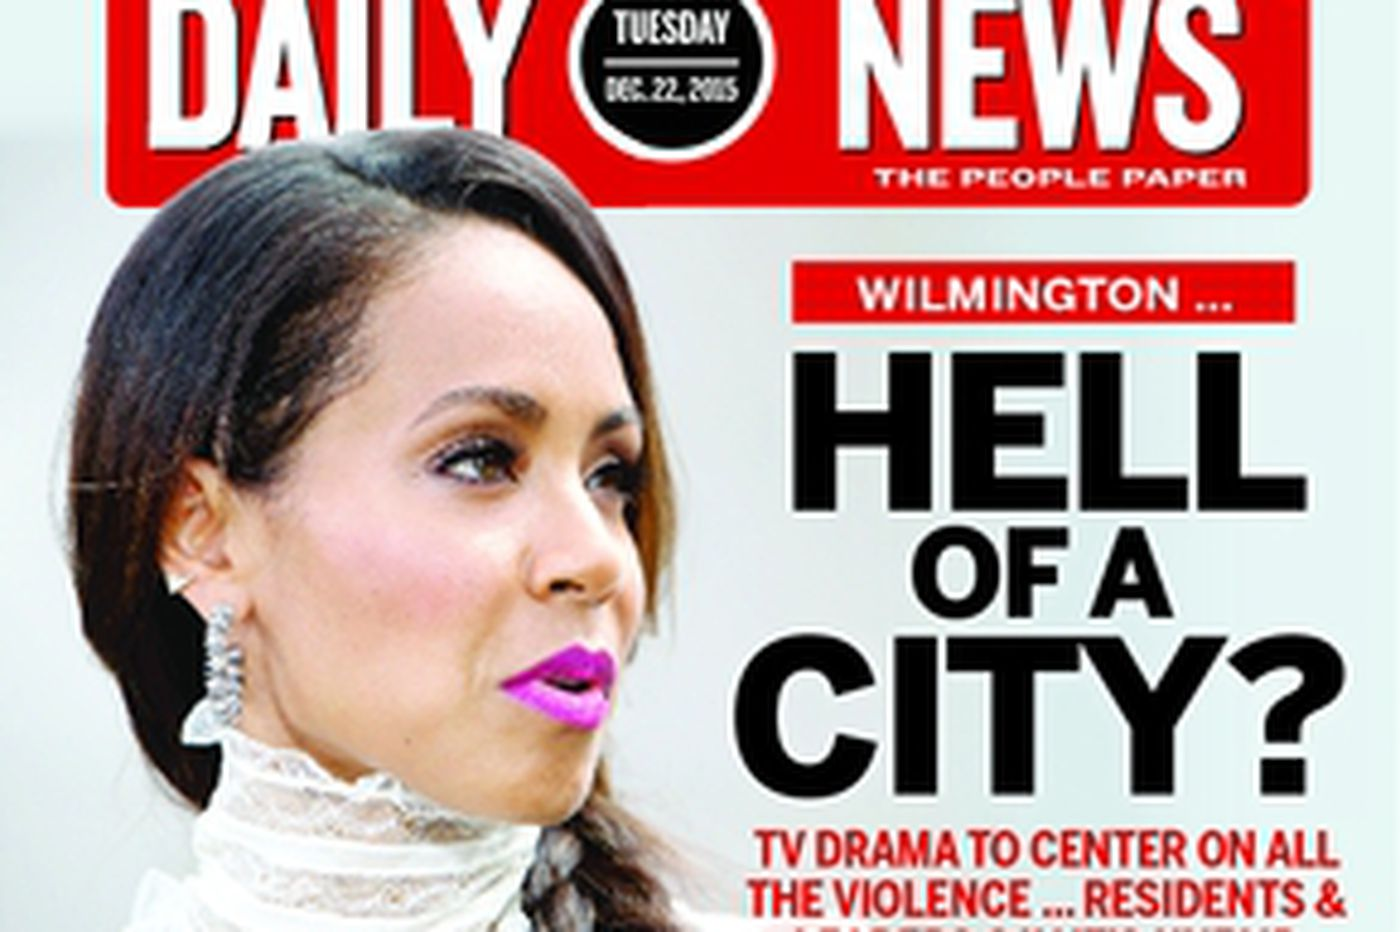 Dailynews Monthly Covers 12/22/15